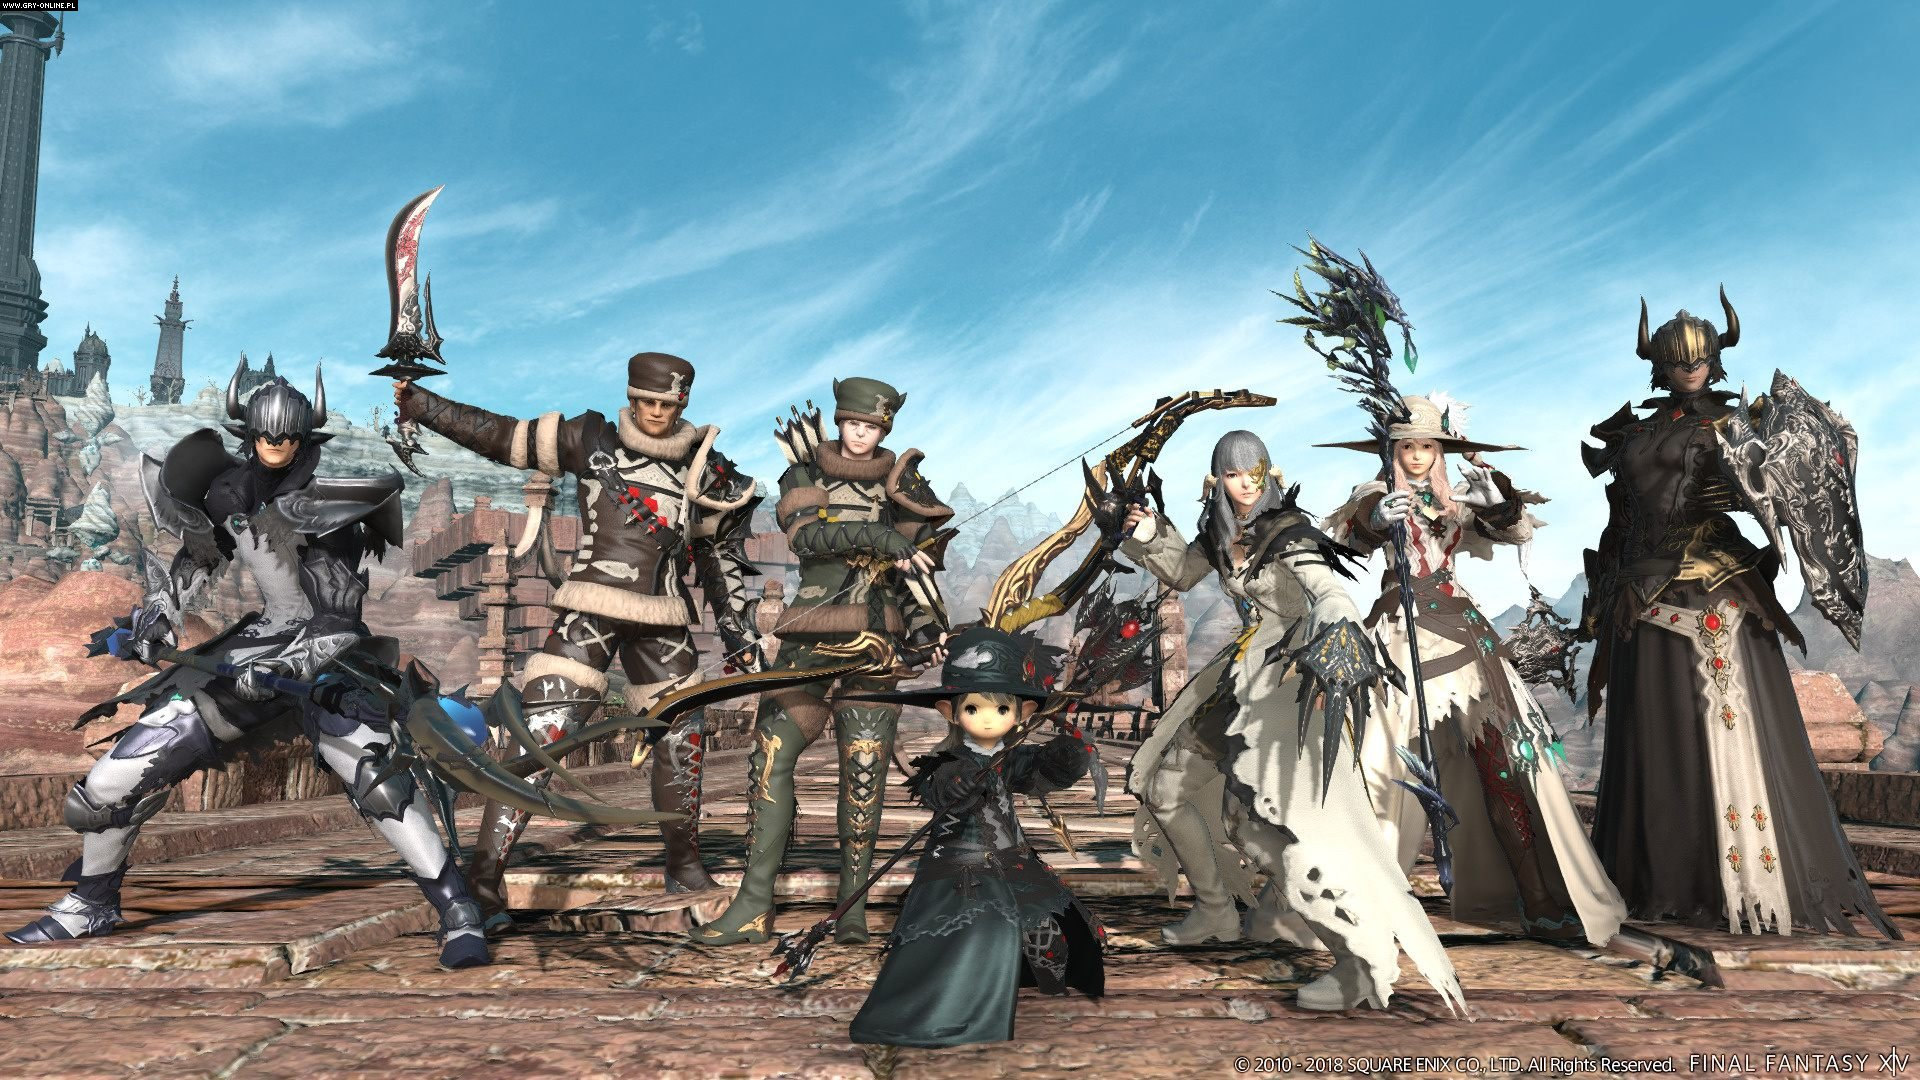 Final Fantasy XIV: Stormblood PS4, PC Gry Screen 30/179, Square-Enix / Eidos